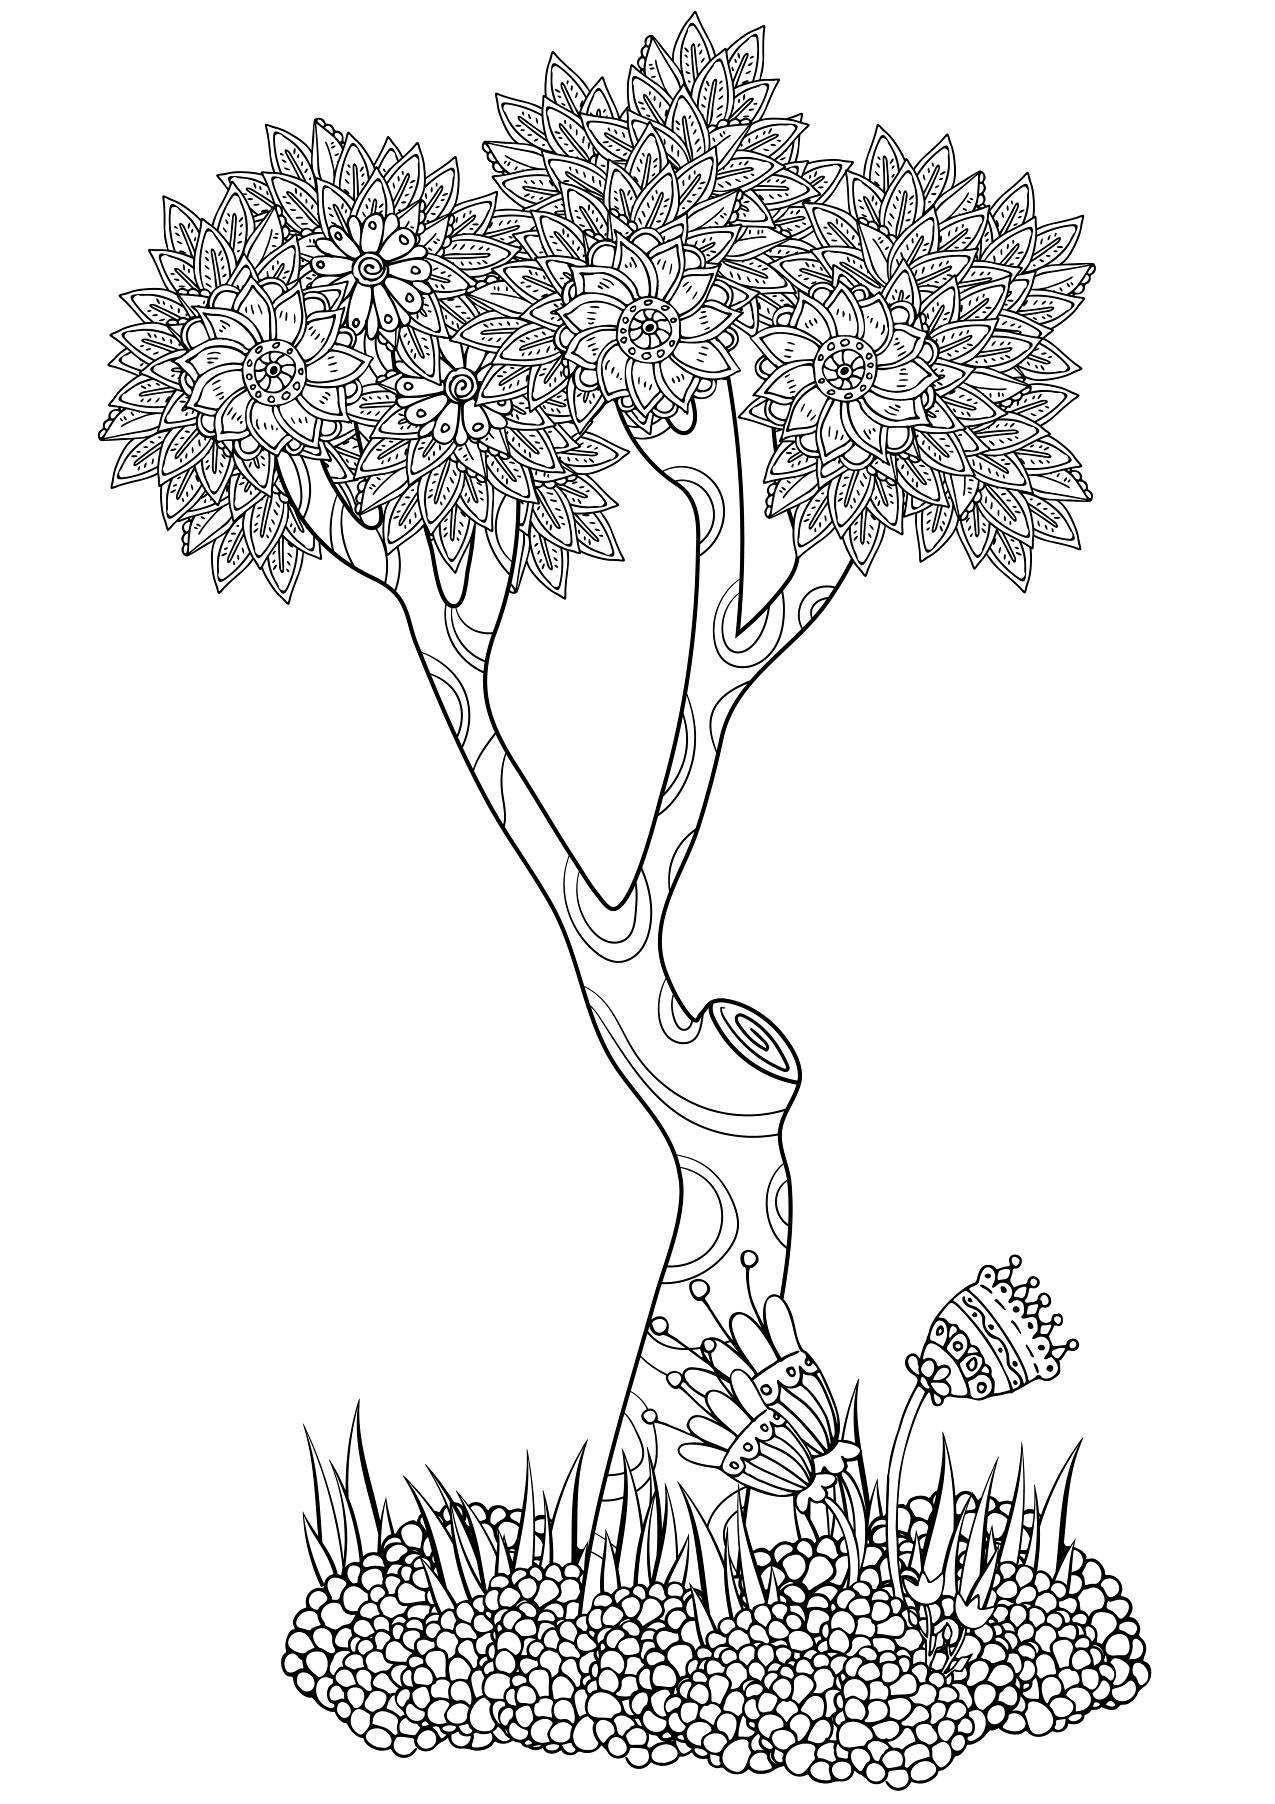 Abstract Trees Coloring Page 30 Garden Coloring Pages Coloring Book Pages Tree Coloring Page